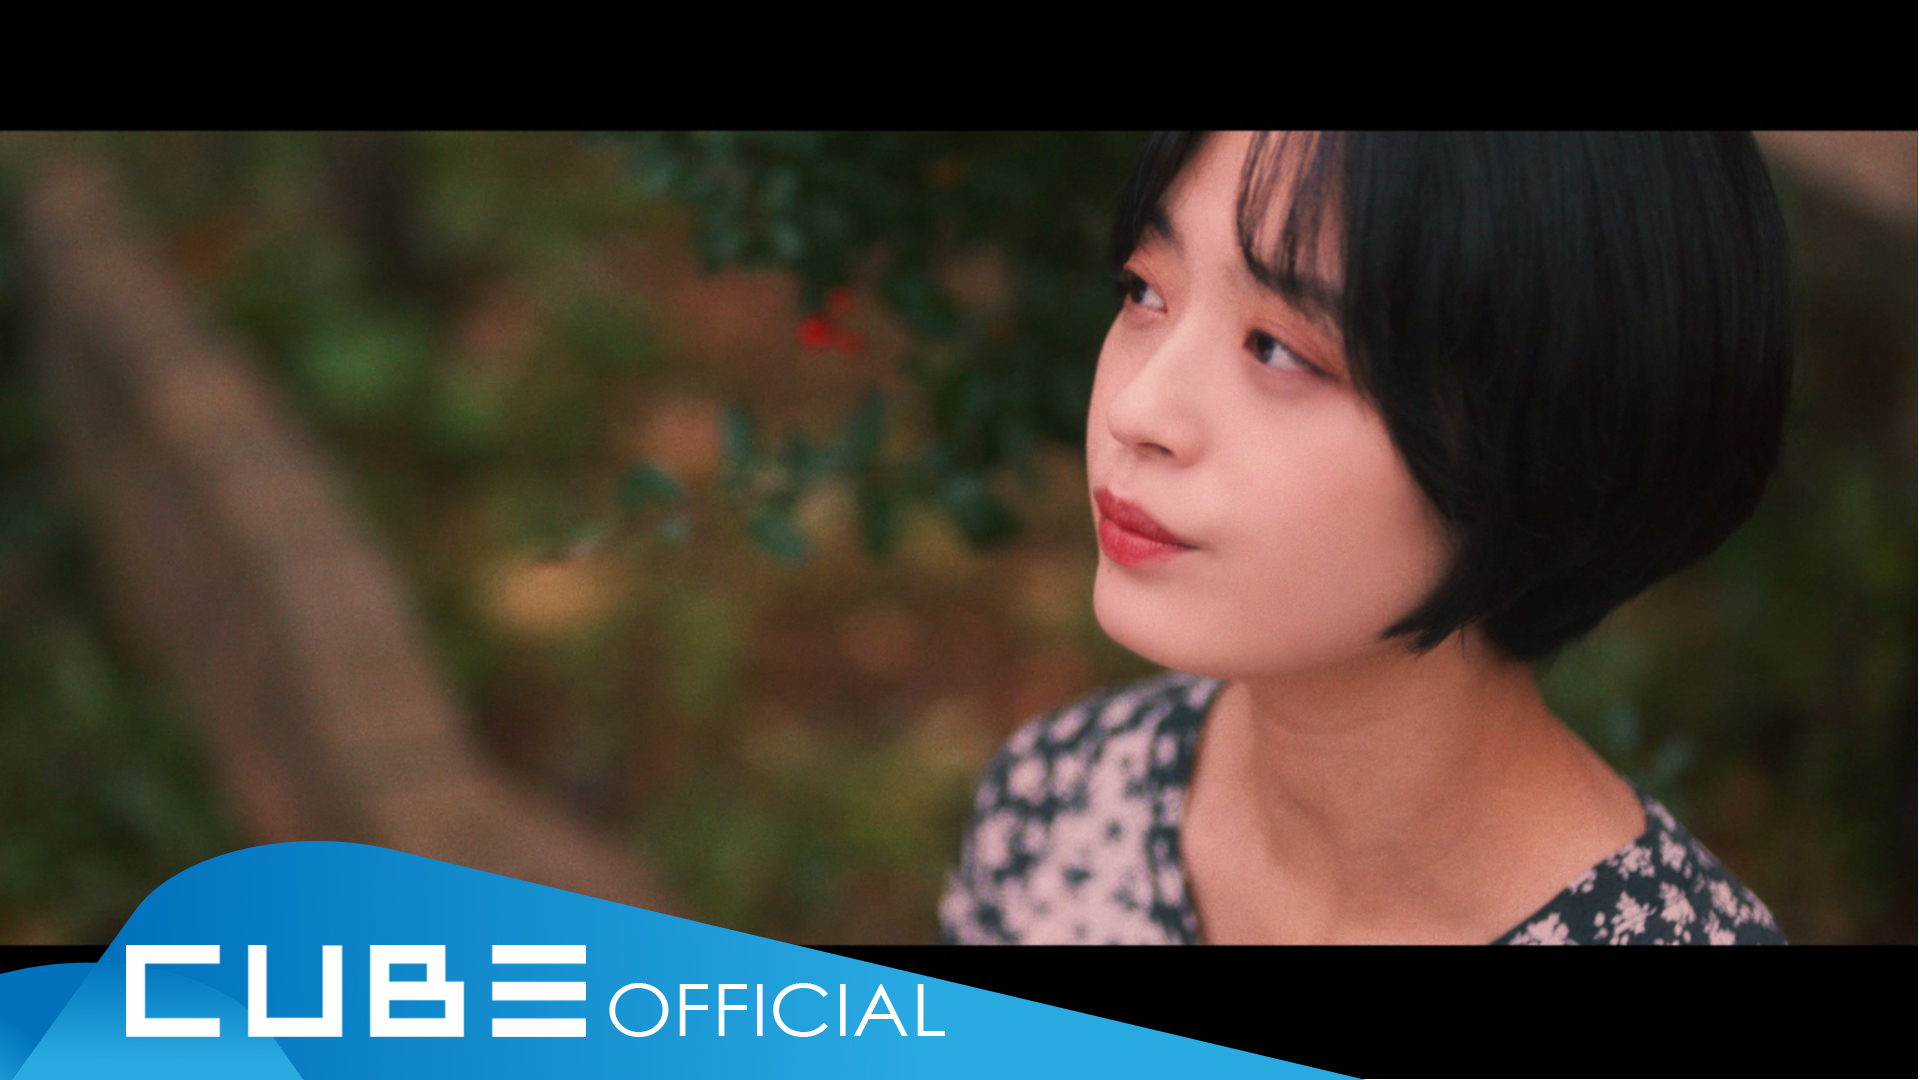 가을로 가는 기차(A train to autumn) - '네가 있던 계절(That Season You Were In)' Official Music Video